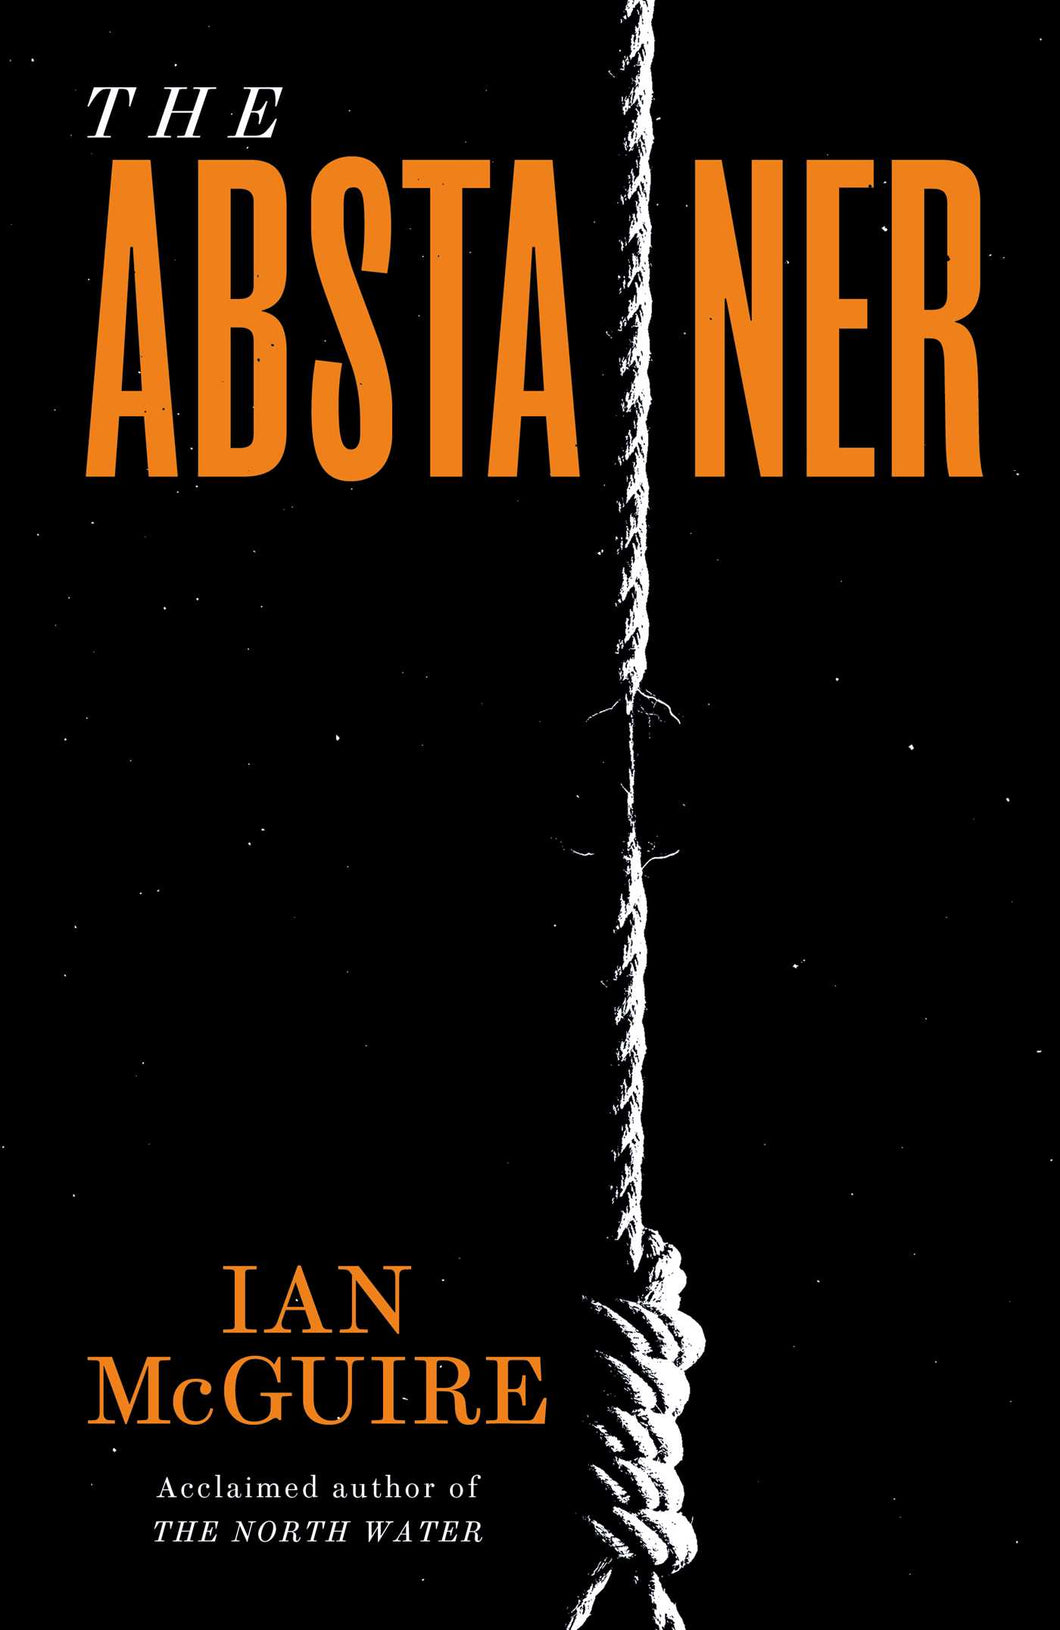 Abstainer (Delayed to 16th September)